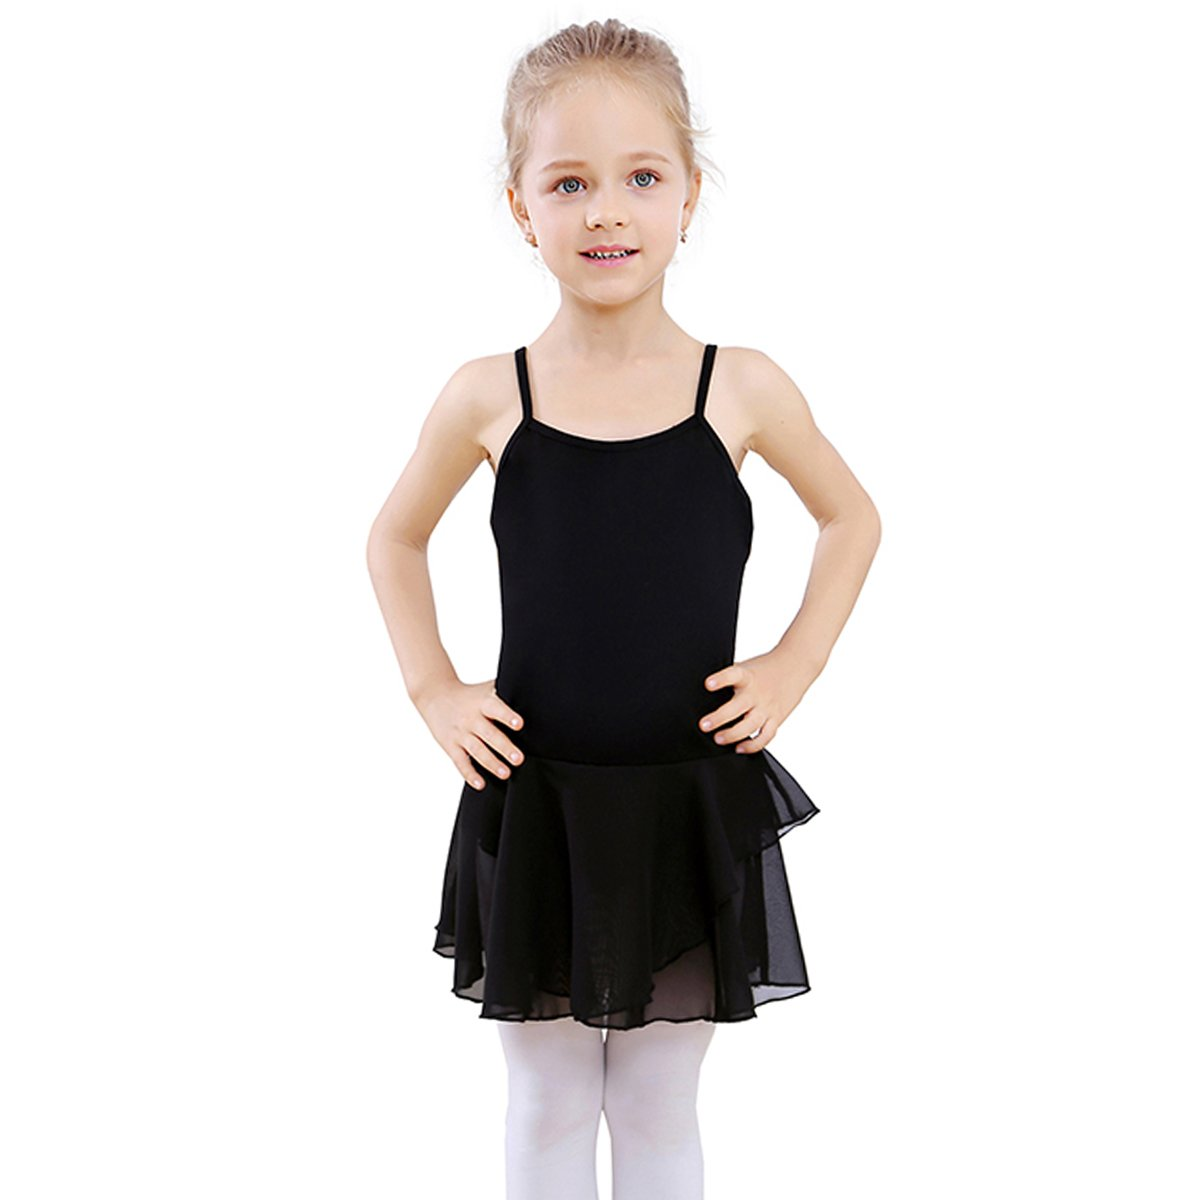 7714086a3 STELLE Girl s Cotton Camisole Dress Leotard for Dance